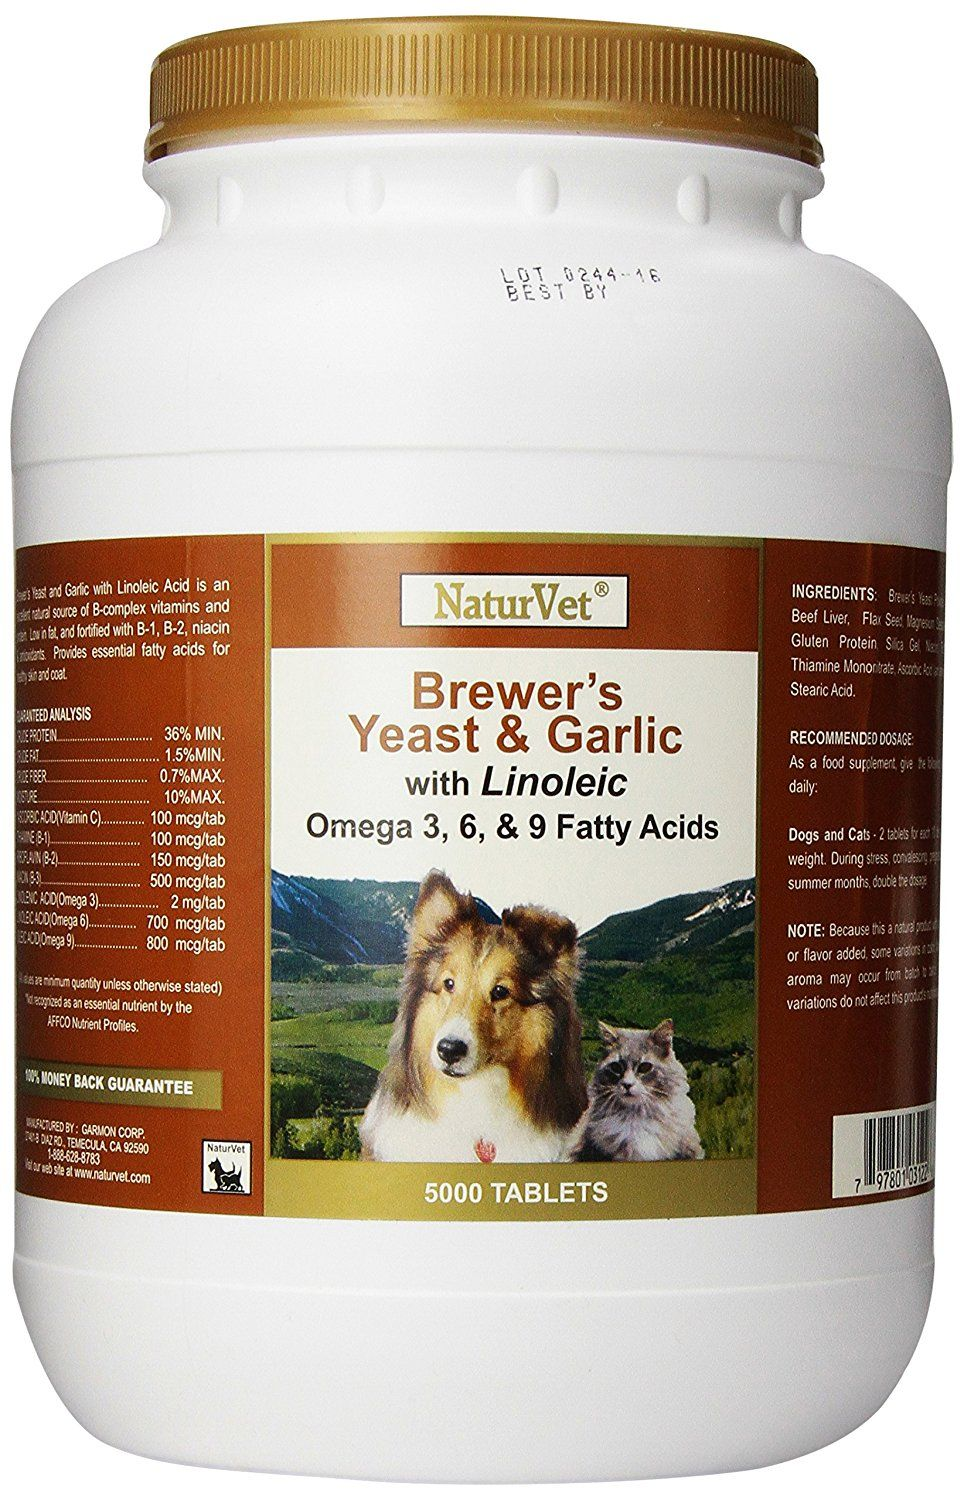 Naturvet Brewers Dried Yeast With Garlic Omega 3 And 6 Dogs And Cats Choose Size You Can Get More Details Here This Brewers Yeast Dry Yeast Dog Dental Care